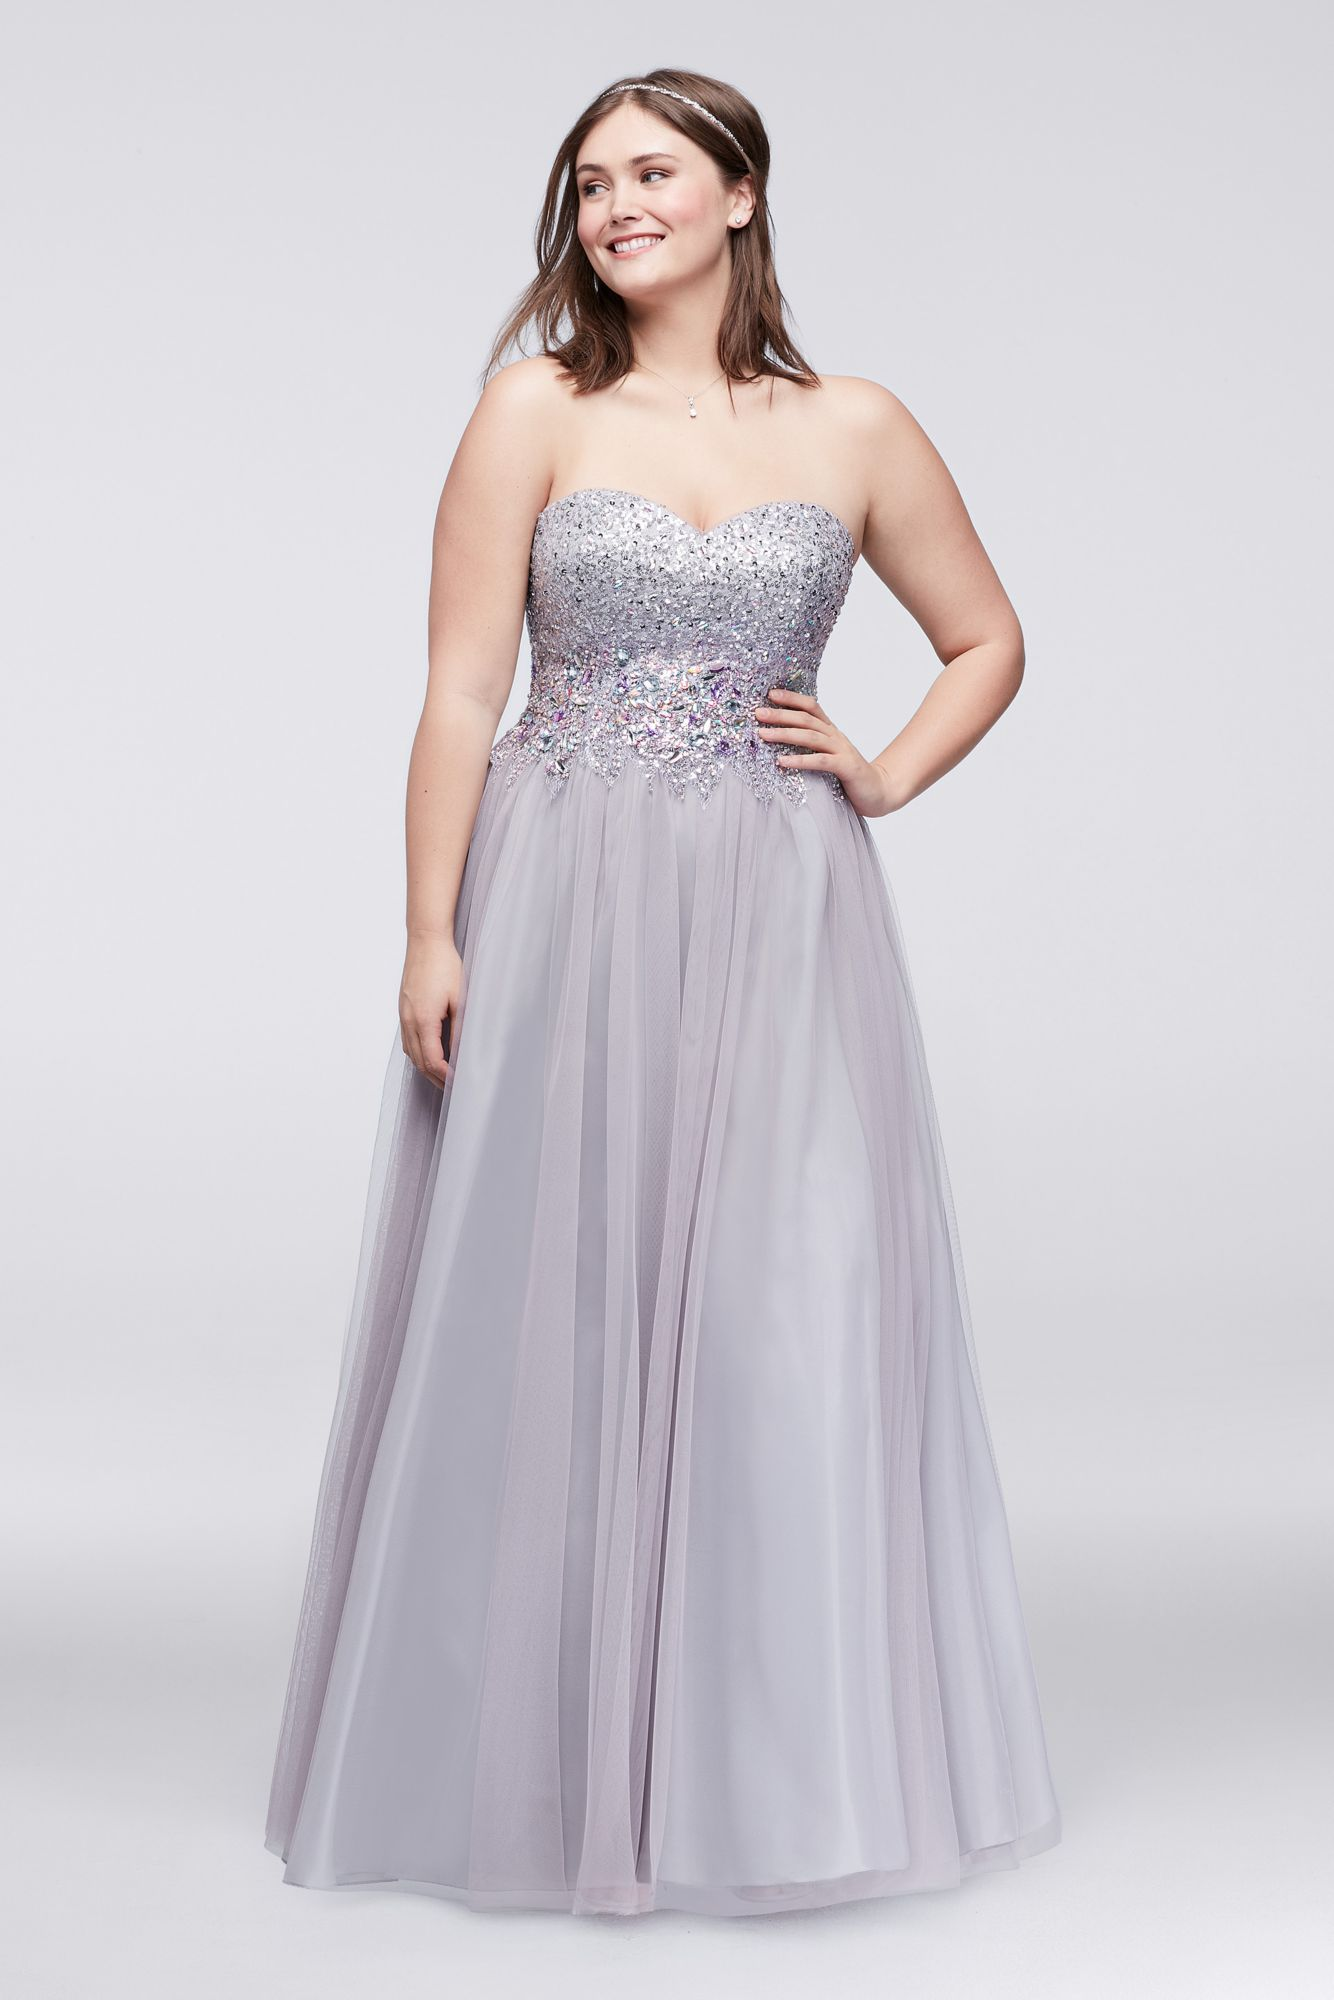 New style plus size strapless beaded dw tulle ball gown cool